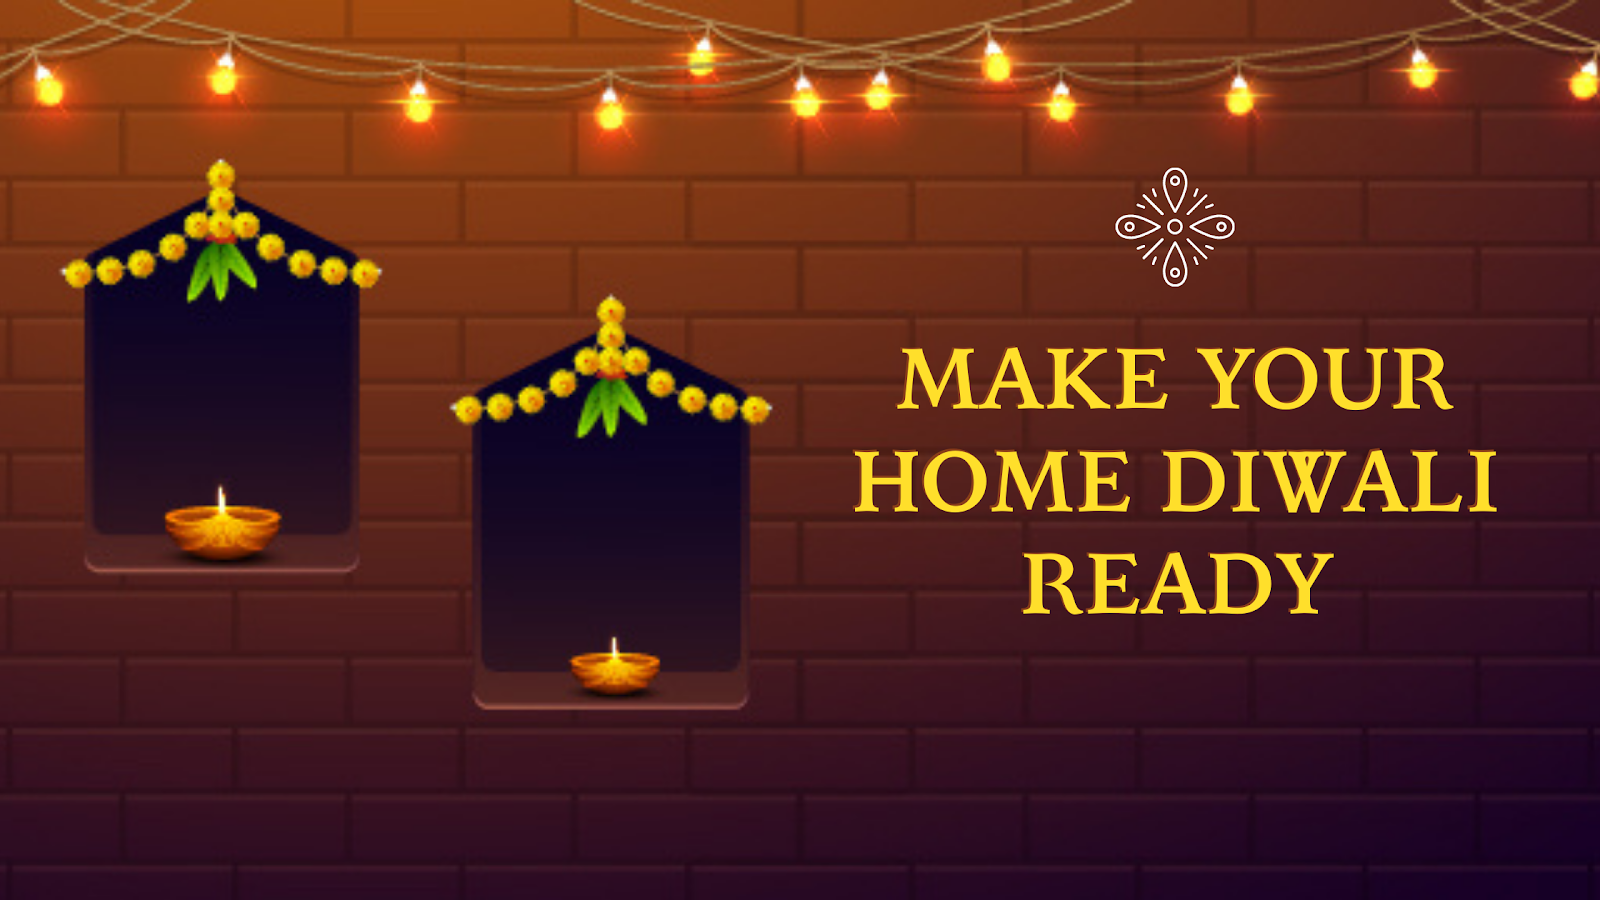 Make Your Home Diwali Ready